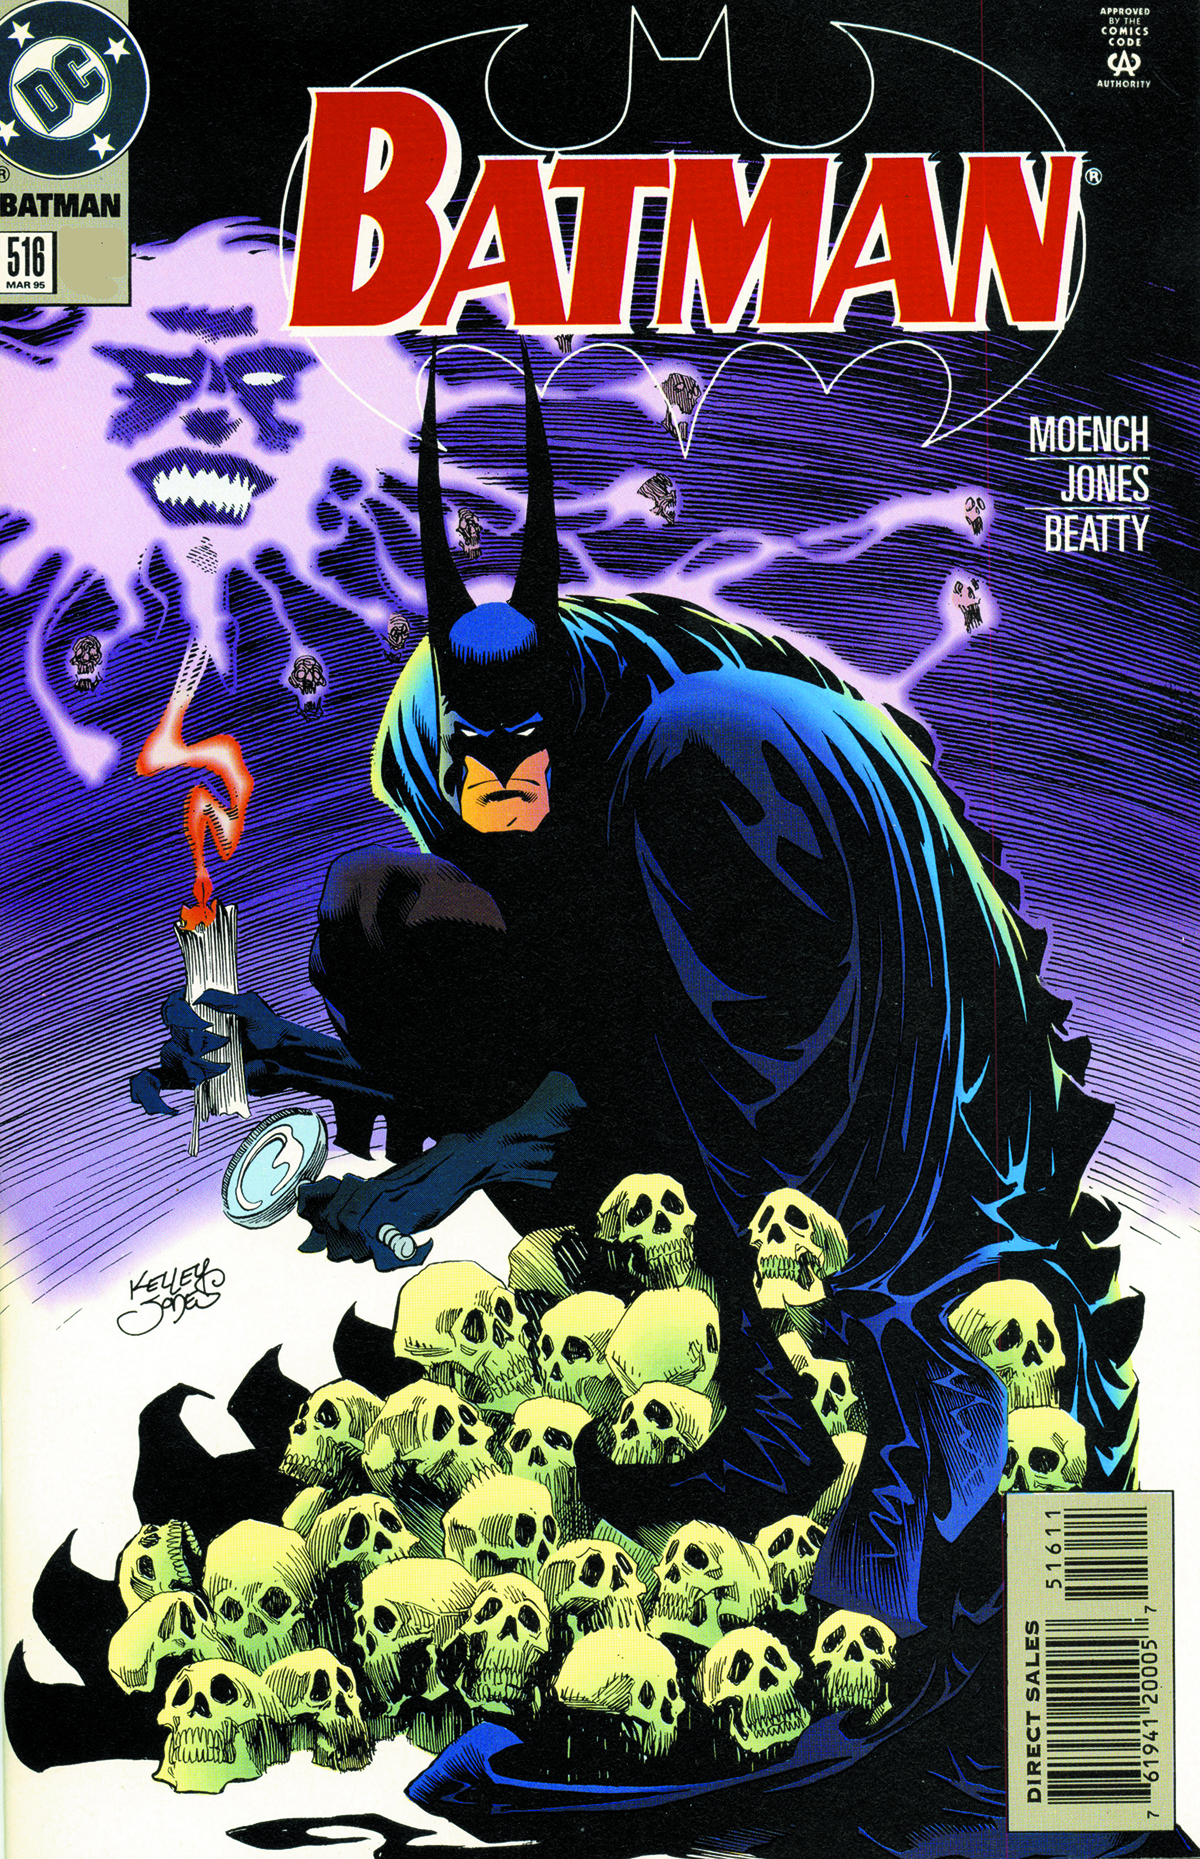 BATMAN BY DOUG MOENCH AND KELLEY JONES HC VOL 01